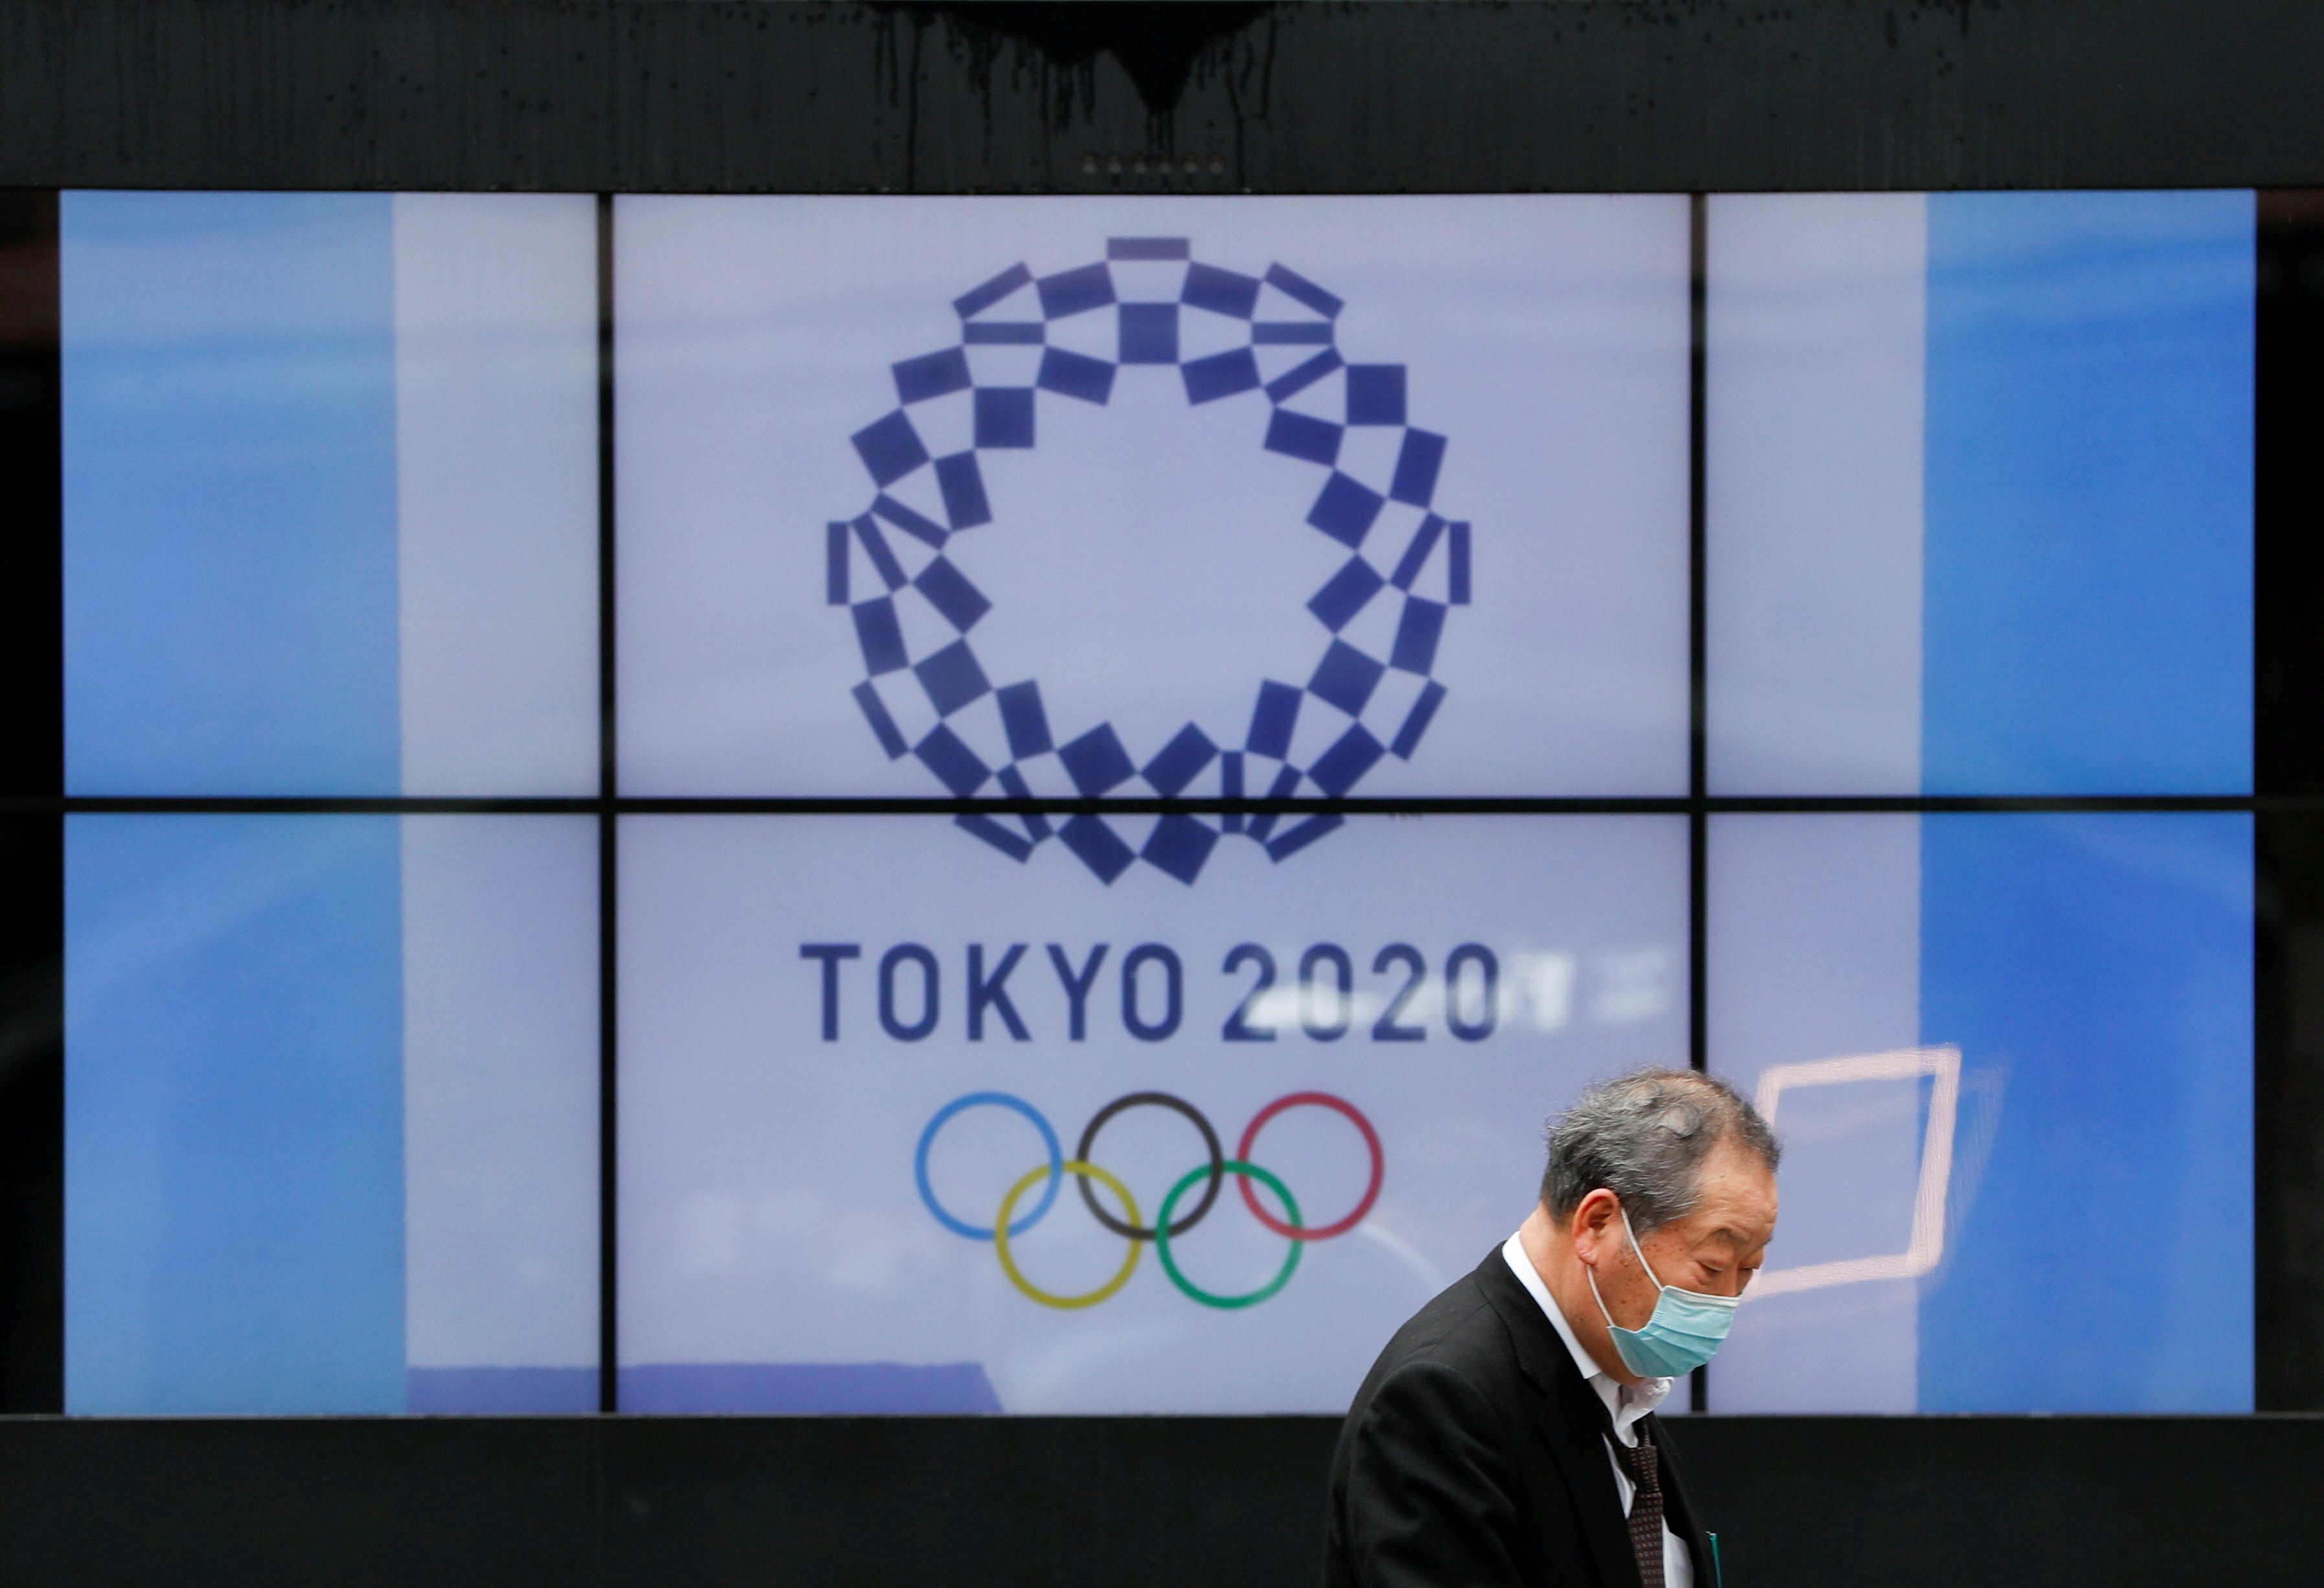 A passerby wearing a protective face mask walks past a screen showing the logo of the Tokyo 2020 Olympic Games that have been postponed to 2021 due to the coronavirus disease (COVID-19) pandemic, in Tokyo, Japan, April 14, 2021.   REUTERS/Issei Kato/File Photo